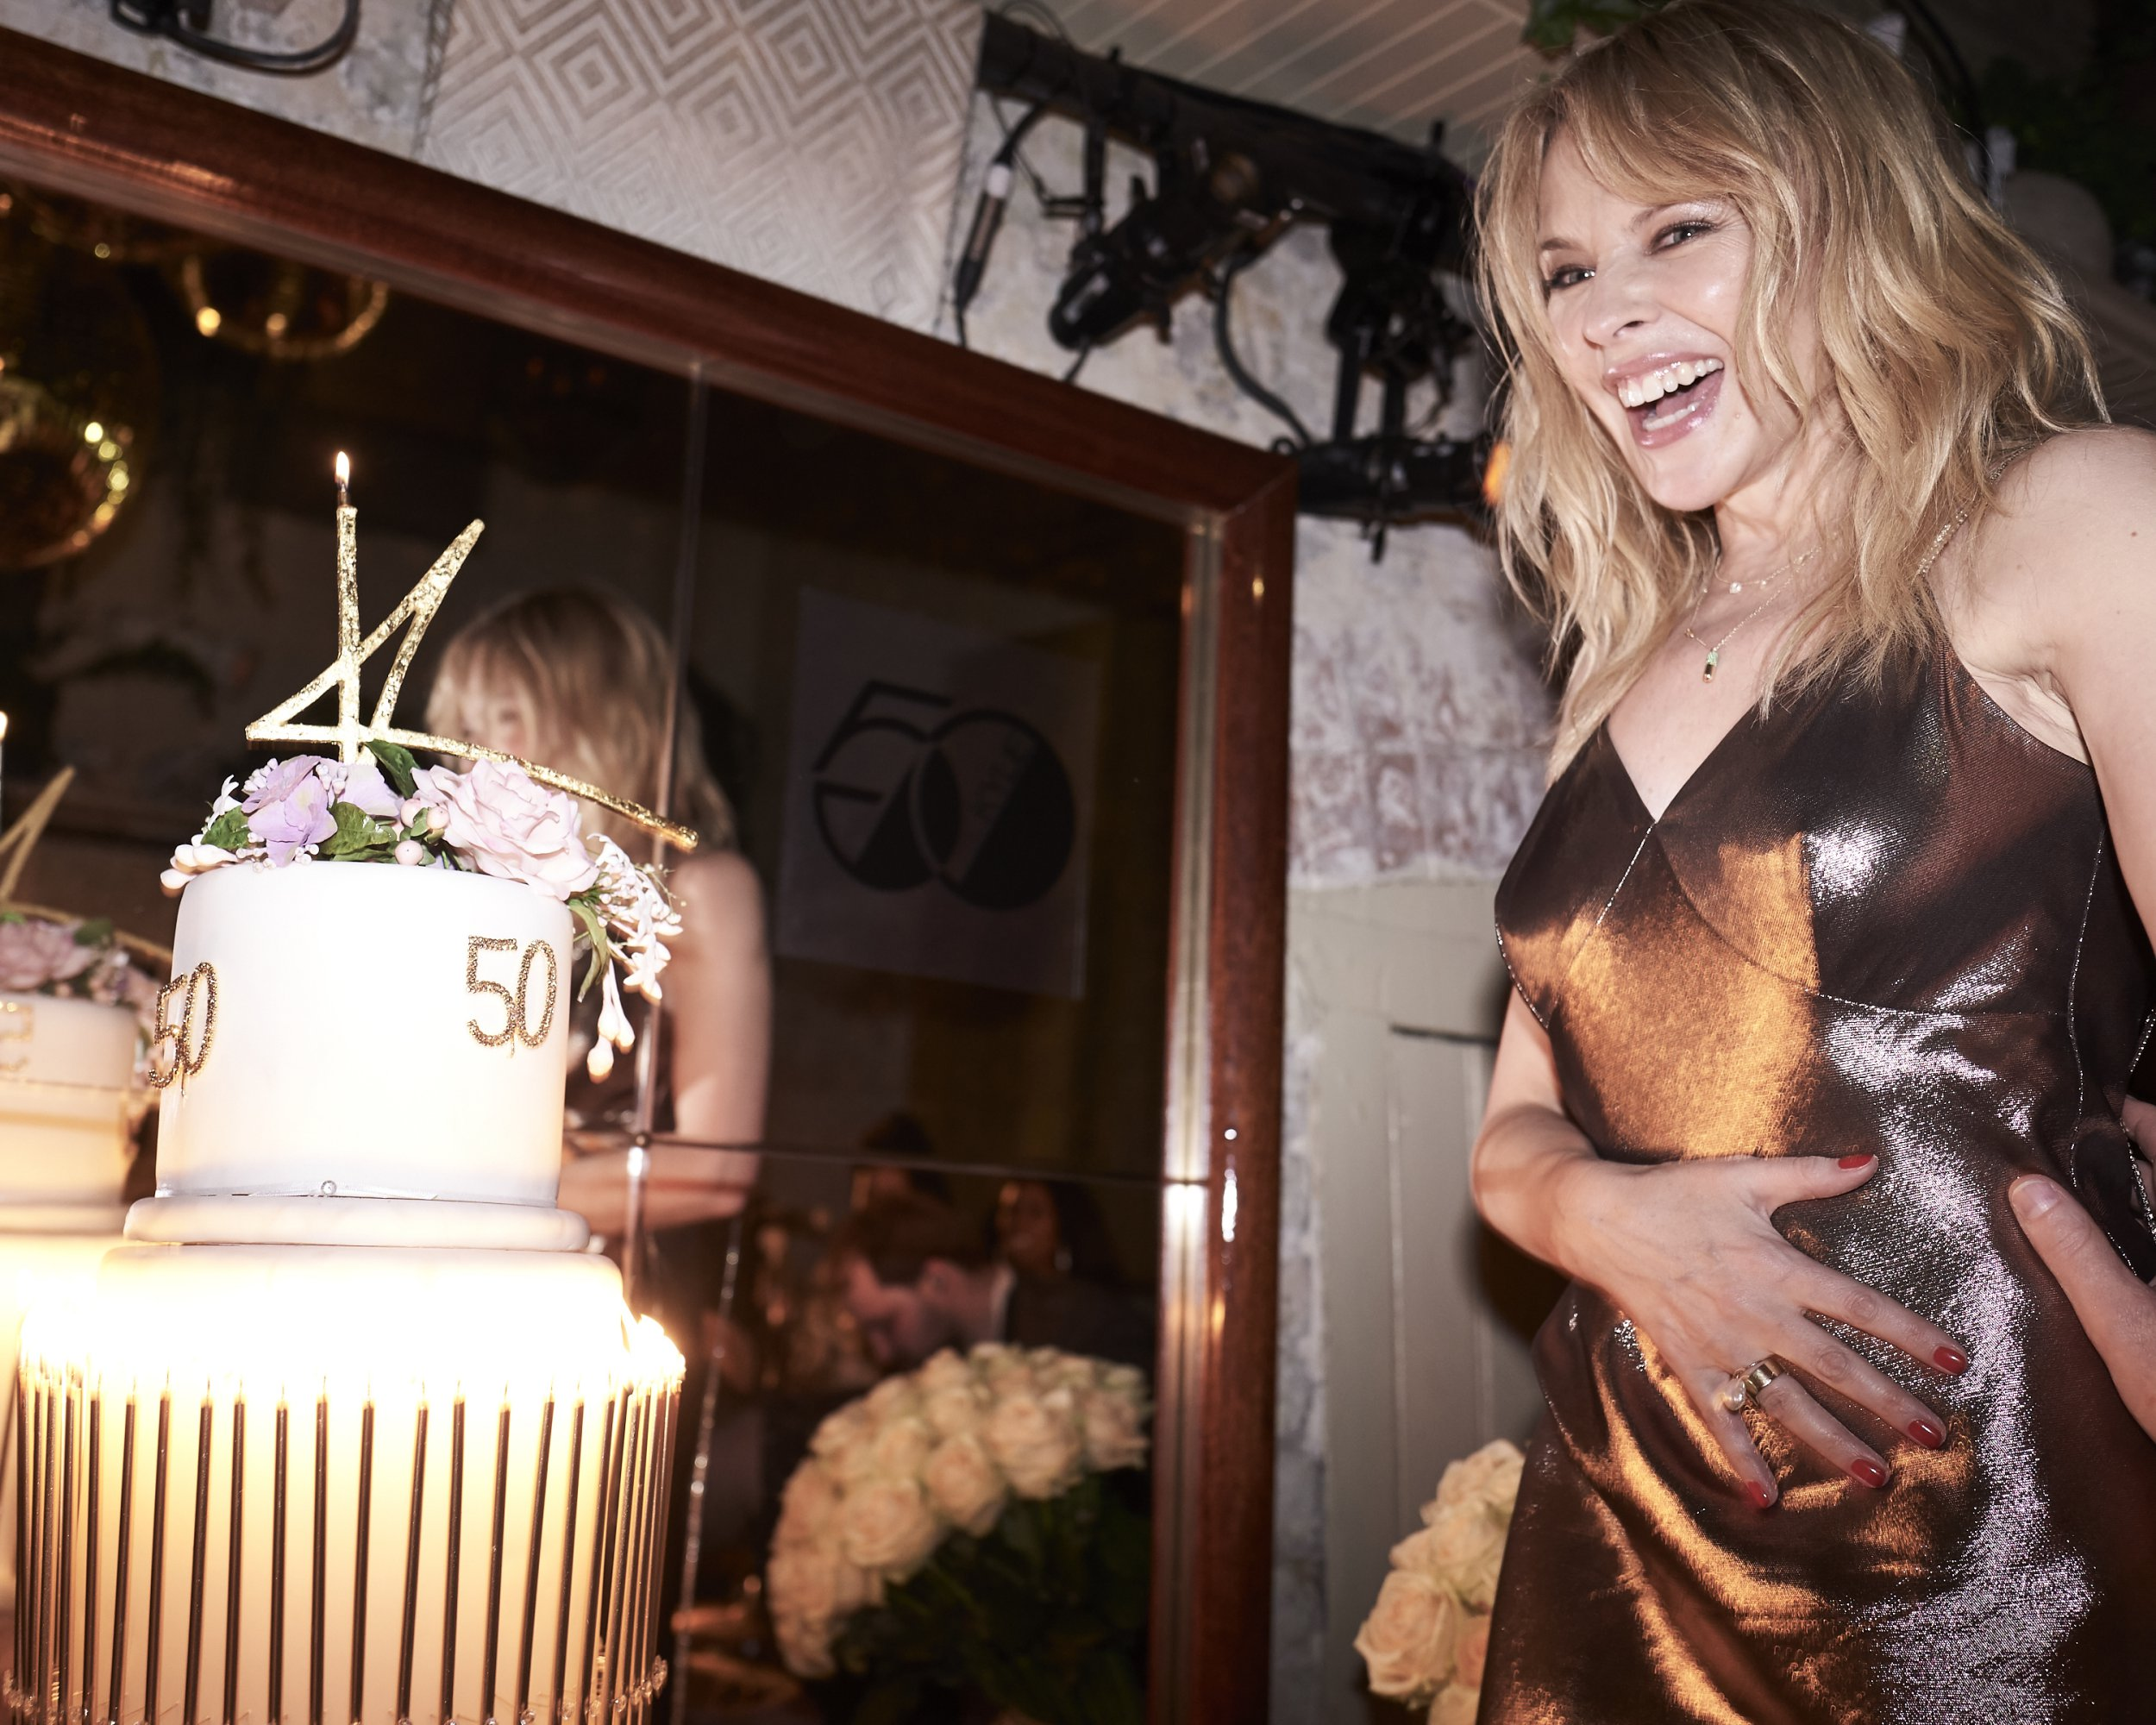 Images are issued to metro.co.uk for a one time reproduction to accompany an article regarding Kylie Minogue???s birthday, and for editorial use only. All other rights are expressly reserved to Darenote Ltd. Credit: Gavin Bond